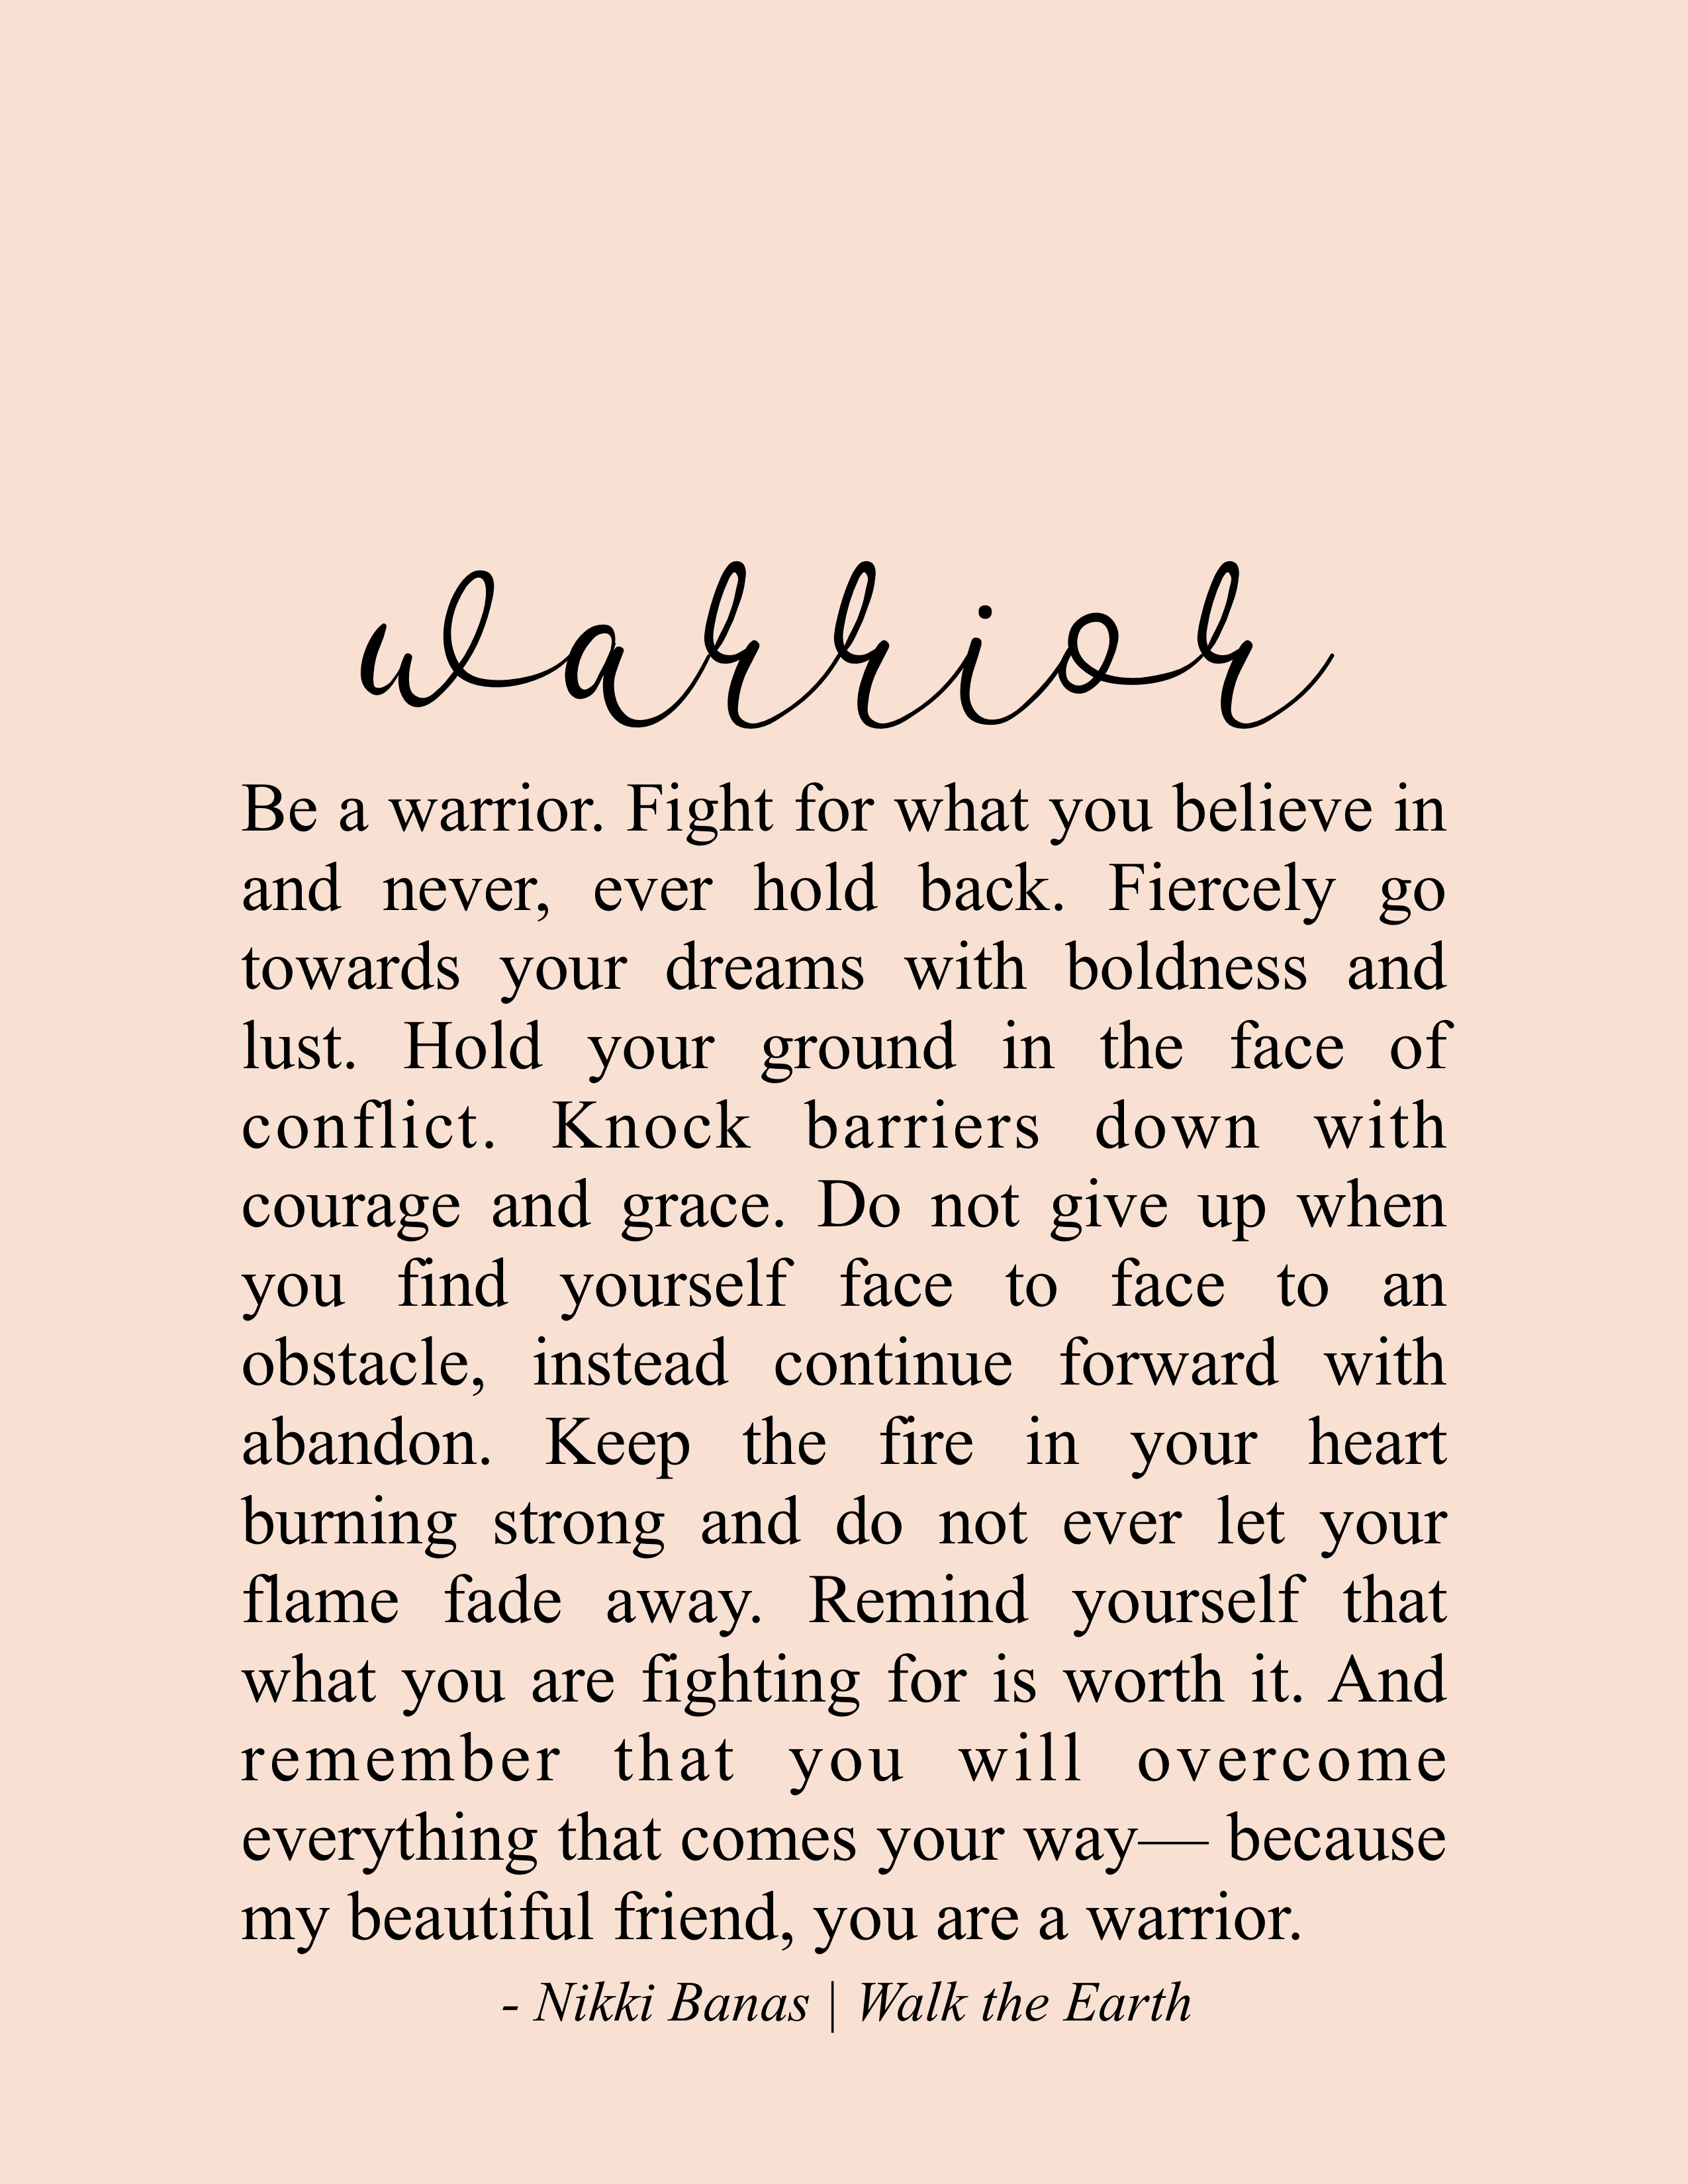 Warrior Quotes, Be a Warrior, Be Brave, Courage, Inspiration, Nikki Banas - Walk the Earth Poetry